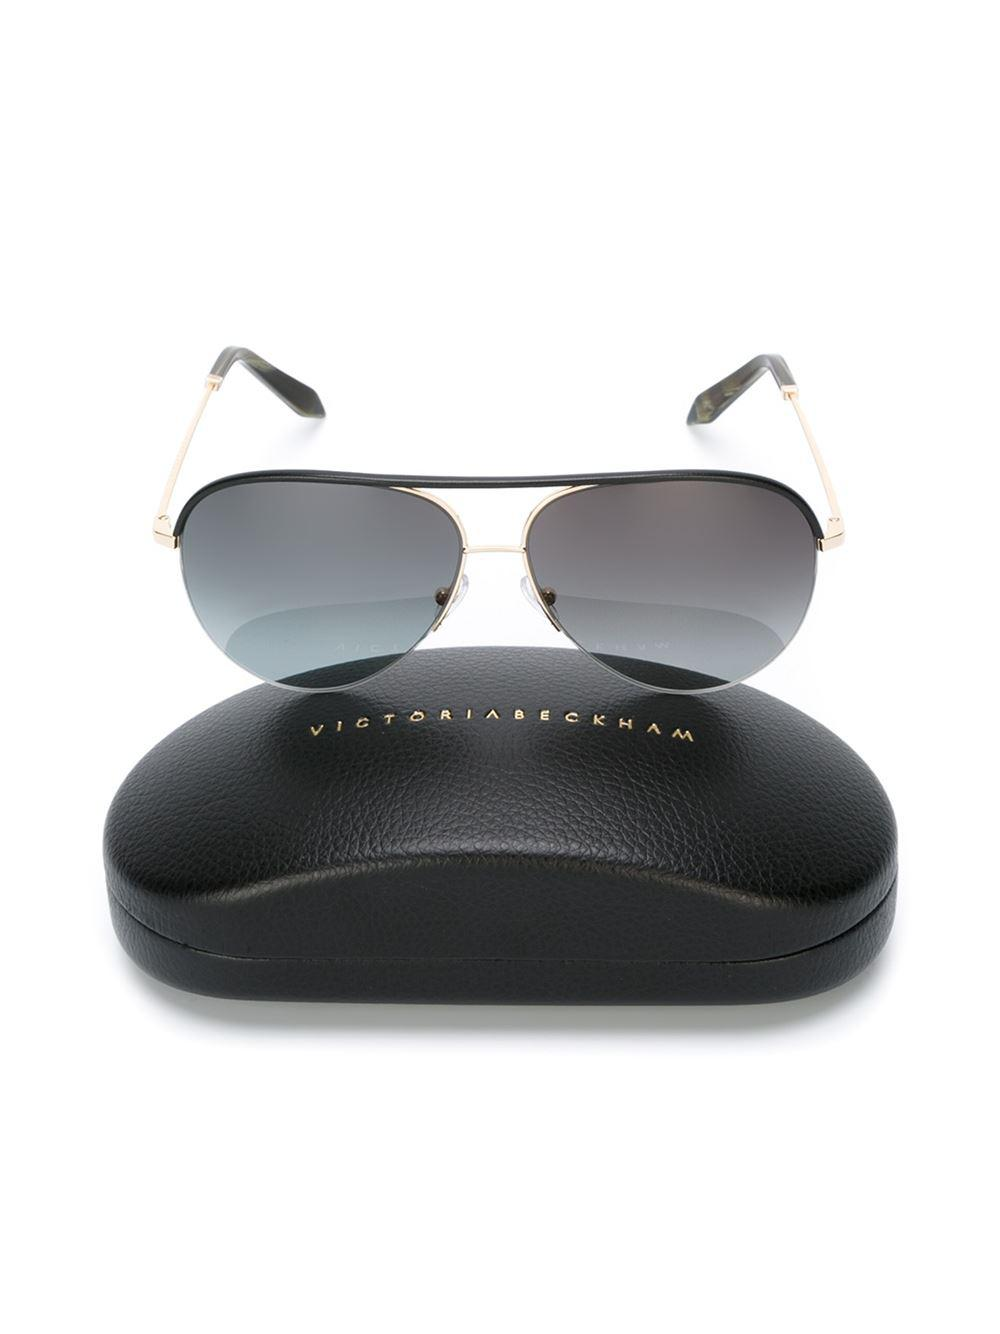 Victoria Beckham Leather Aviator Frame Sunglasses in Black